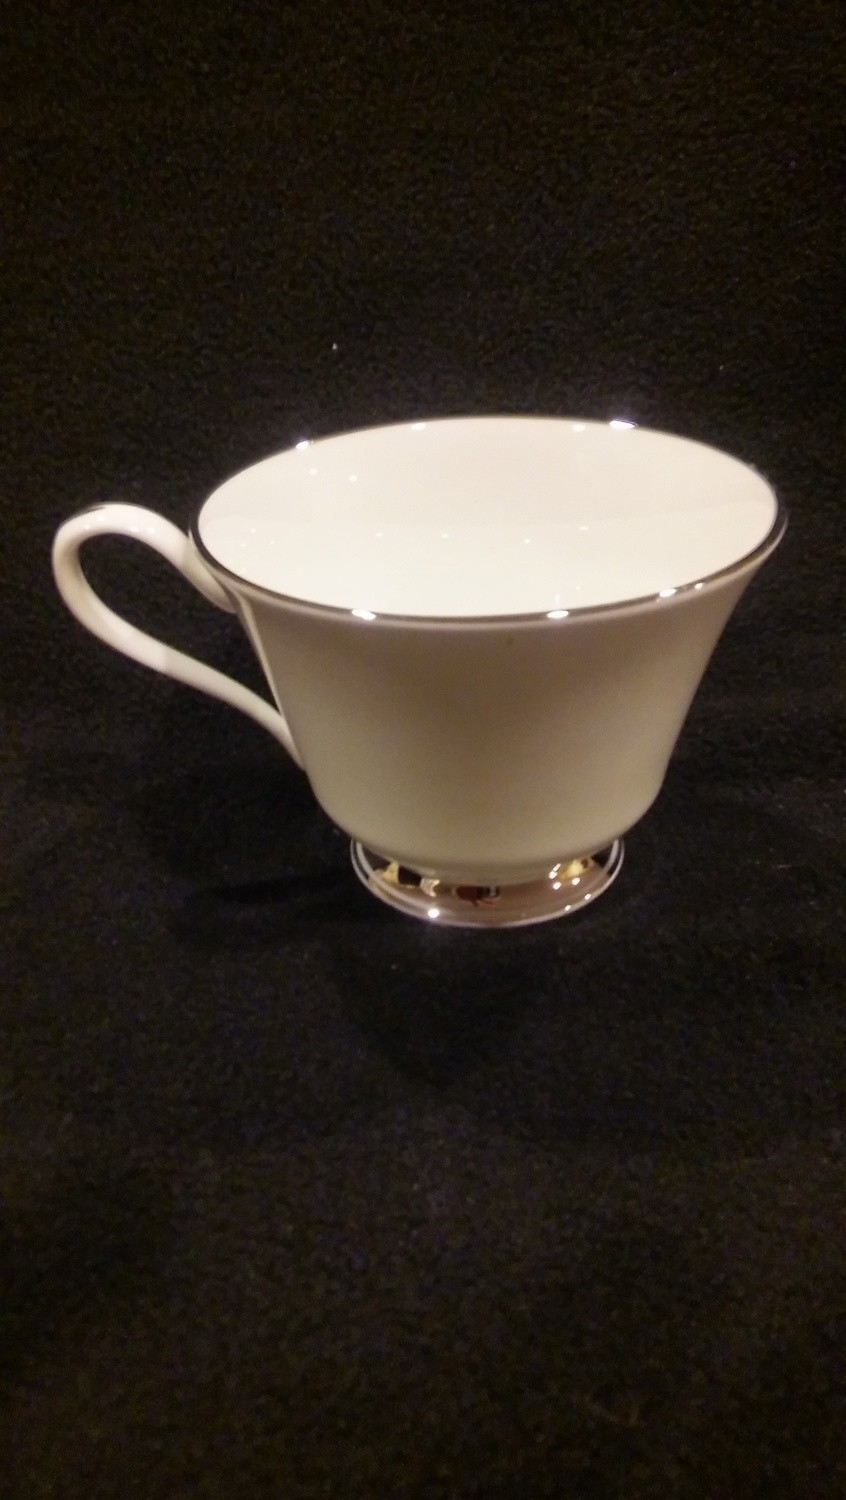 Lenox Oxford Bone China, Footed Coffee Cup, Lexington Pattern, White with Platinum